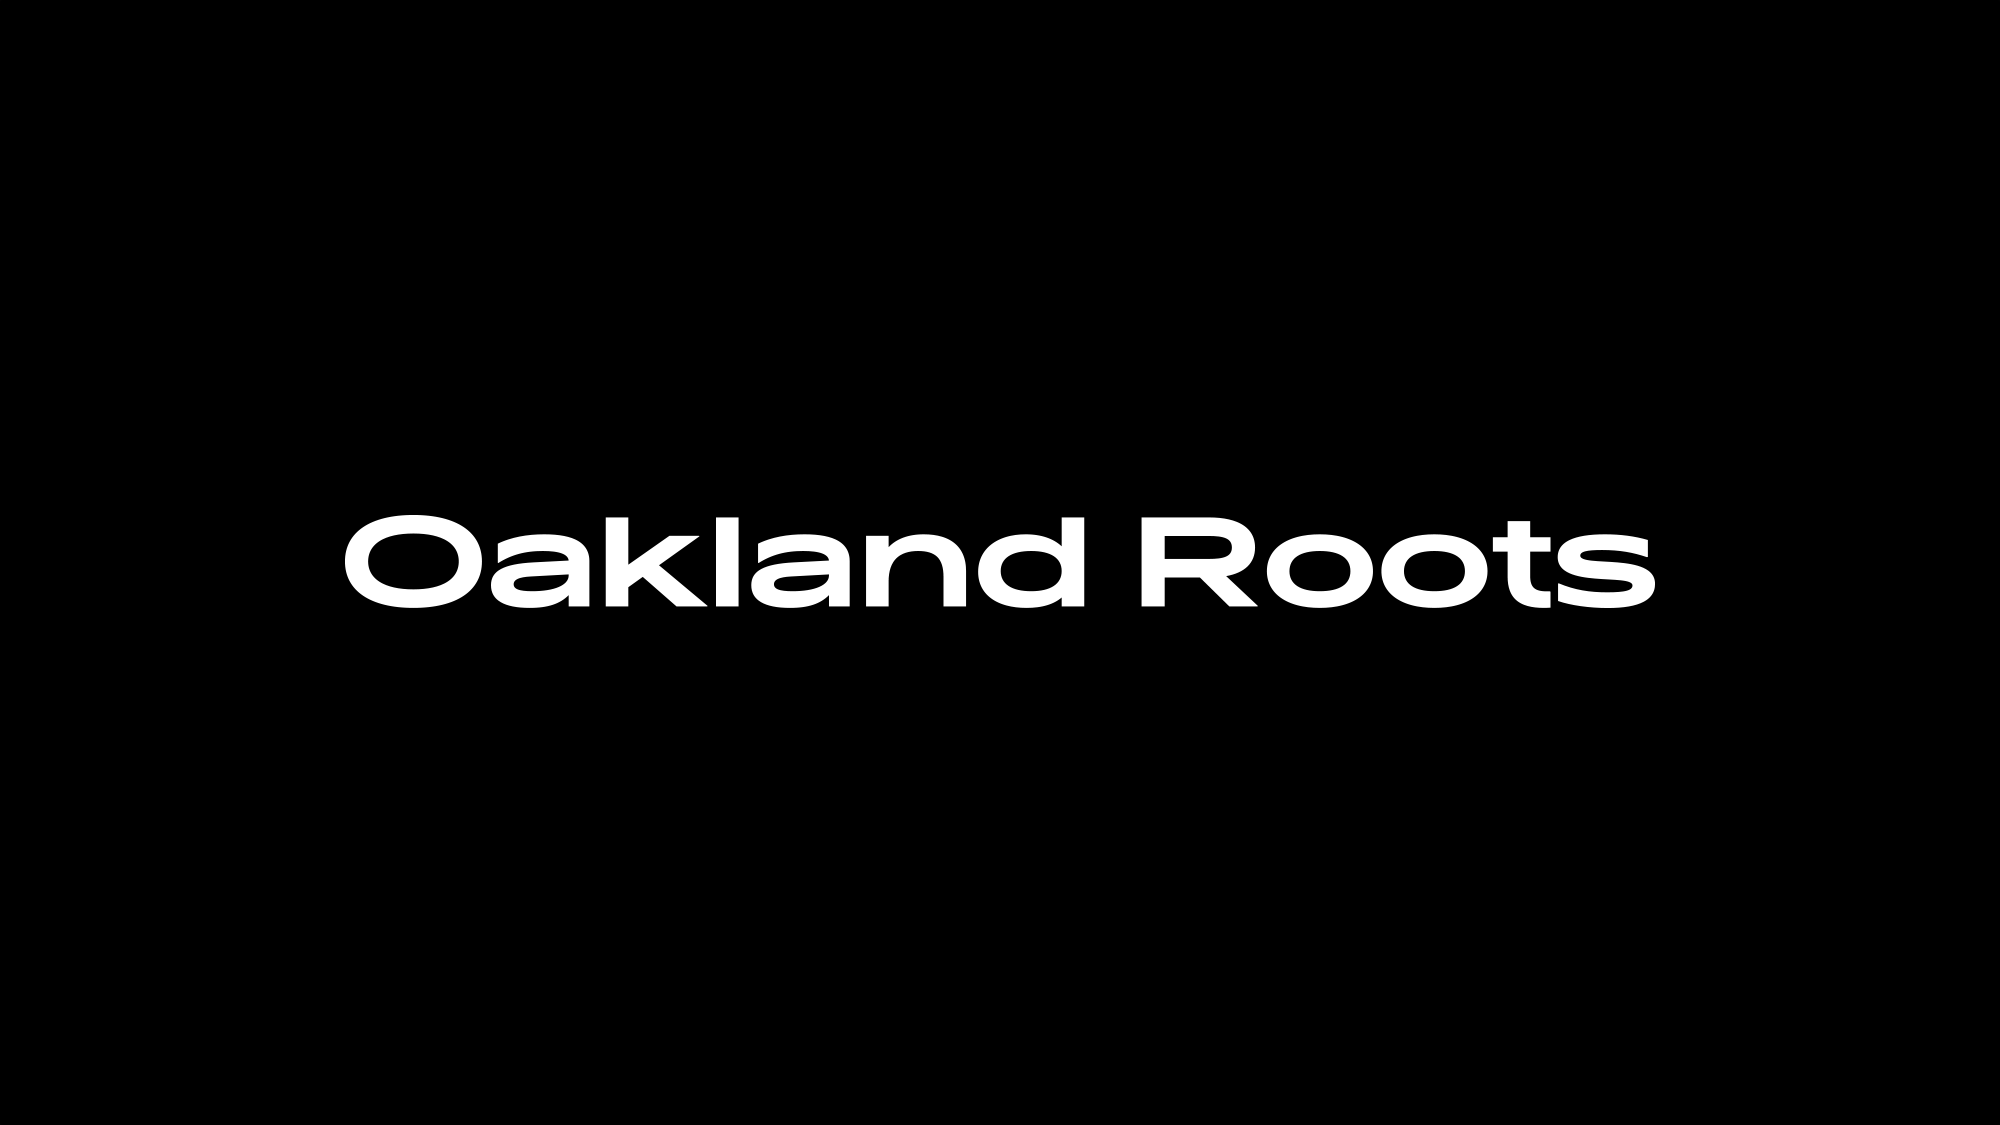 Oakland Roots.png